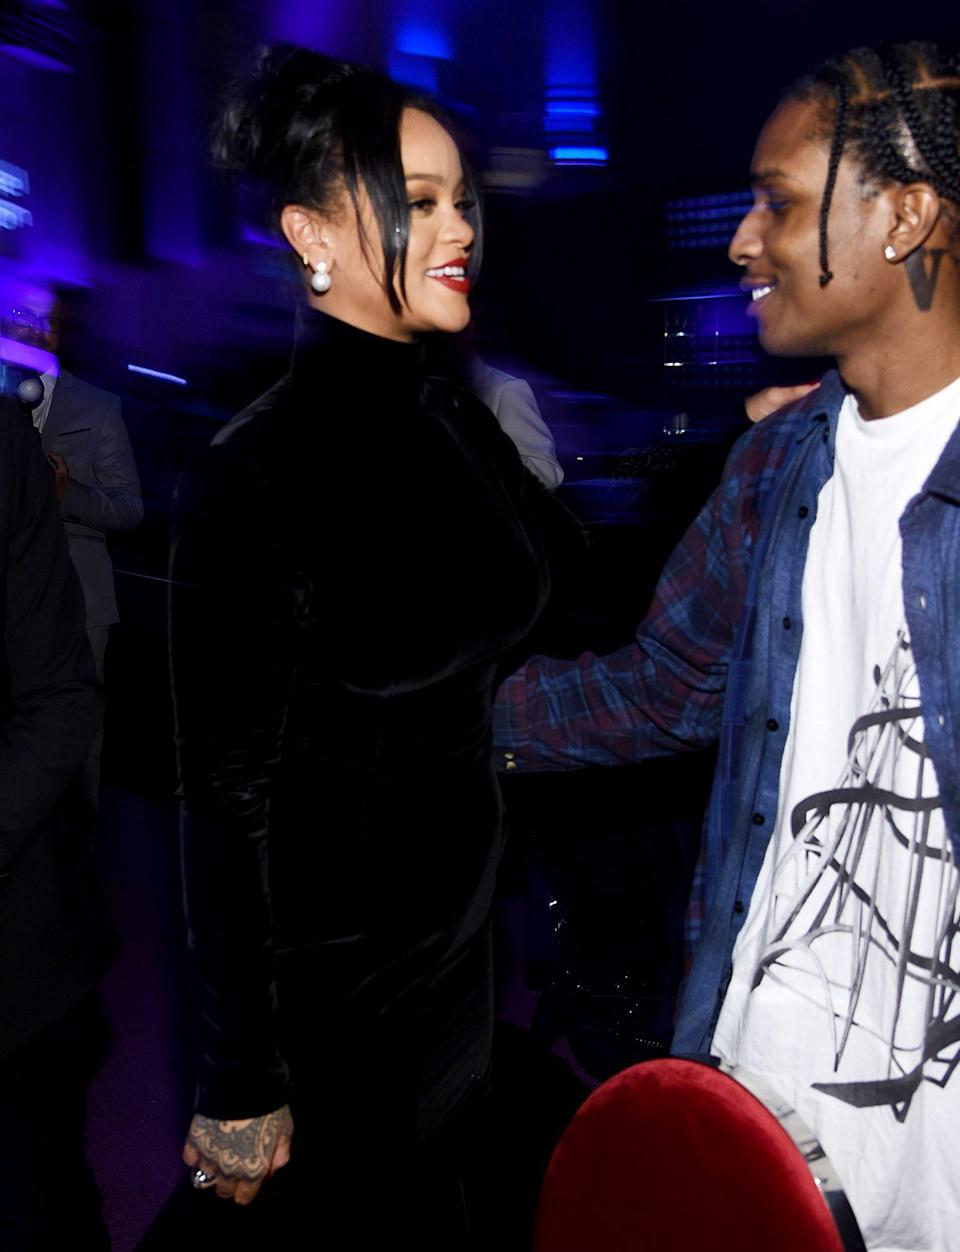 <p>At RiRi's 5th Annual Diamond Ball in 2019, the then-rumored couple chatted animatedly, her in a sleek black gown and him in a streetwear-centric look.</p>